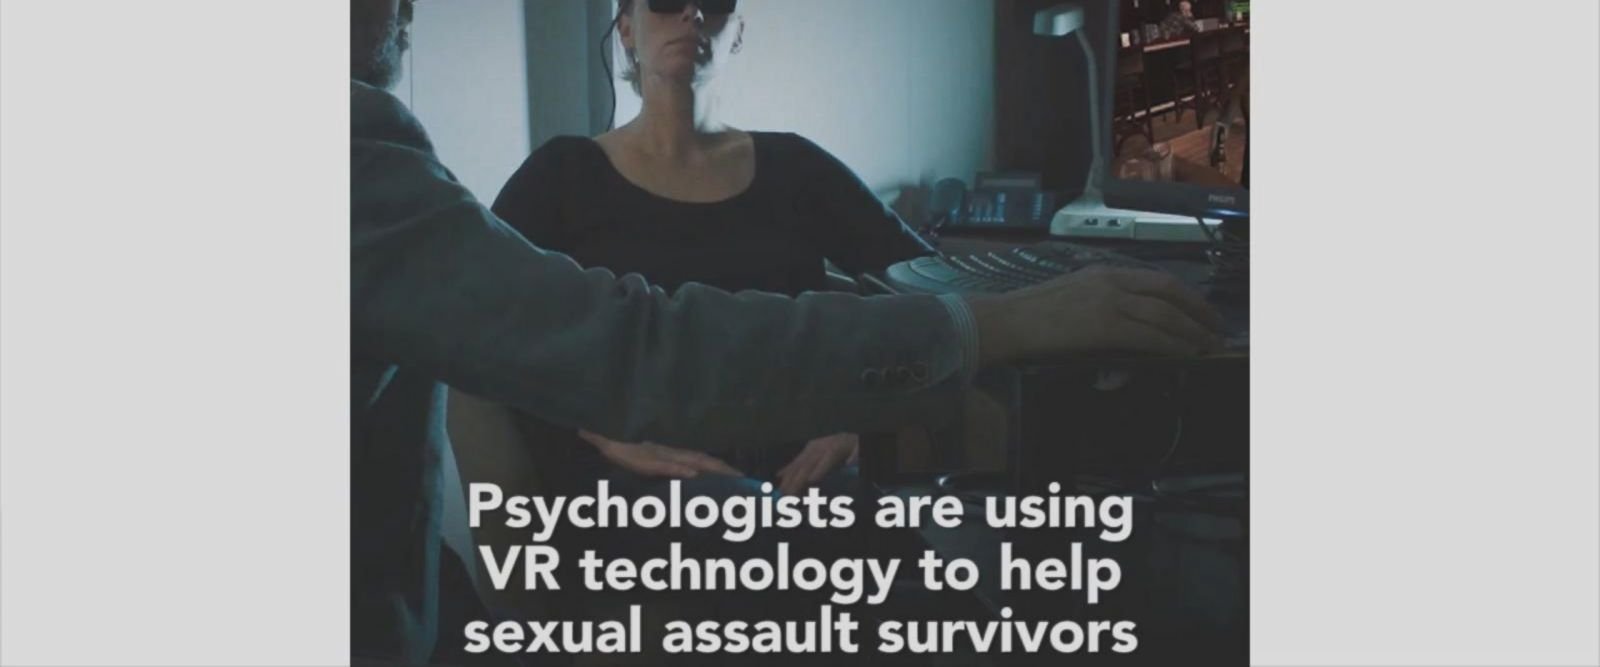 """For rape victims, the idea is that in therapy we need to help people confront their fears, and one way is that we have to go places where we don't go normally,"" Dr. Stéphane Bouchard said."